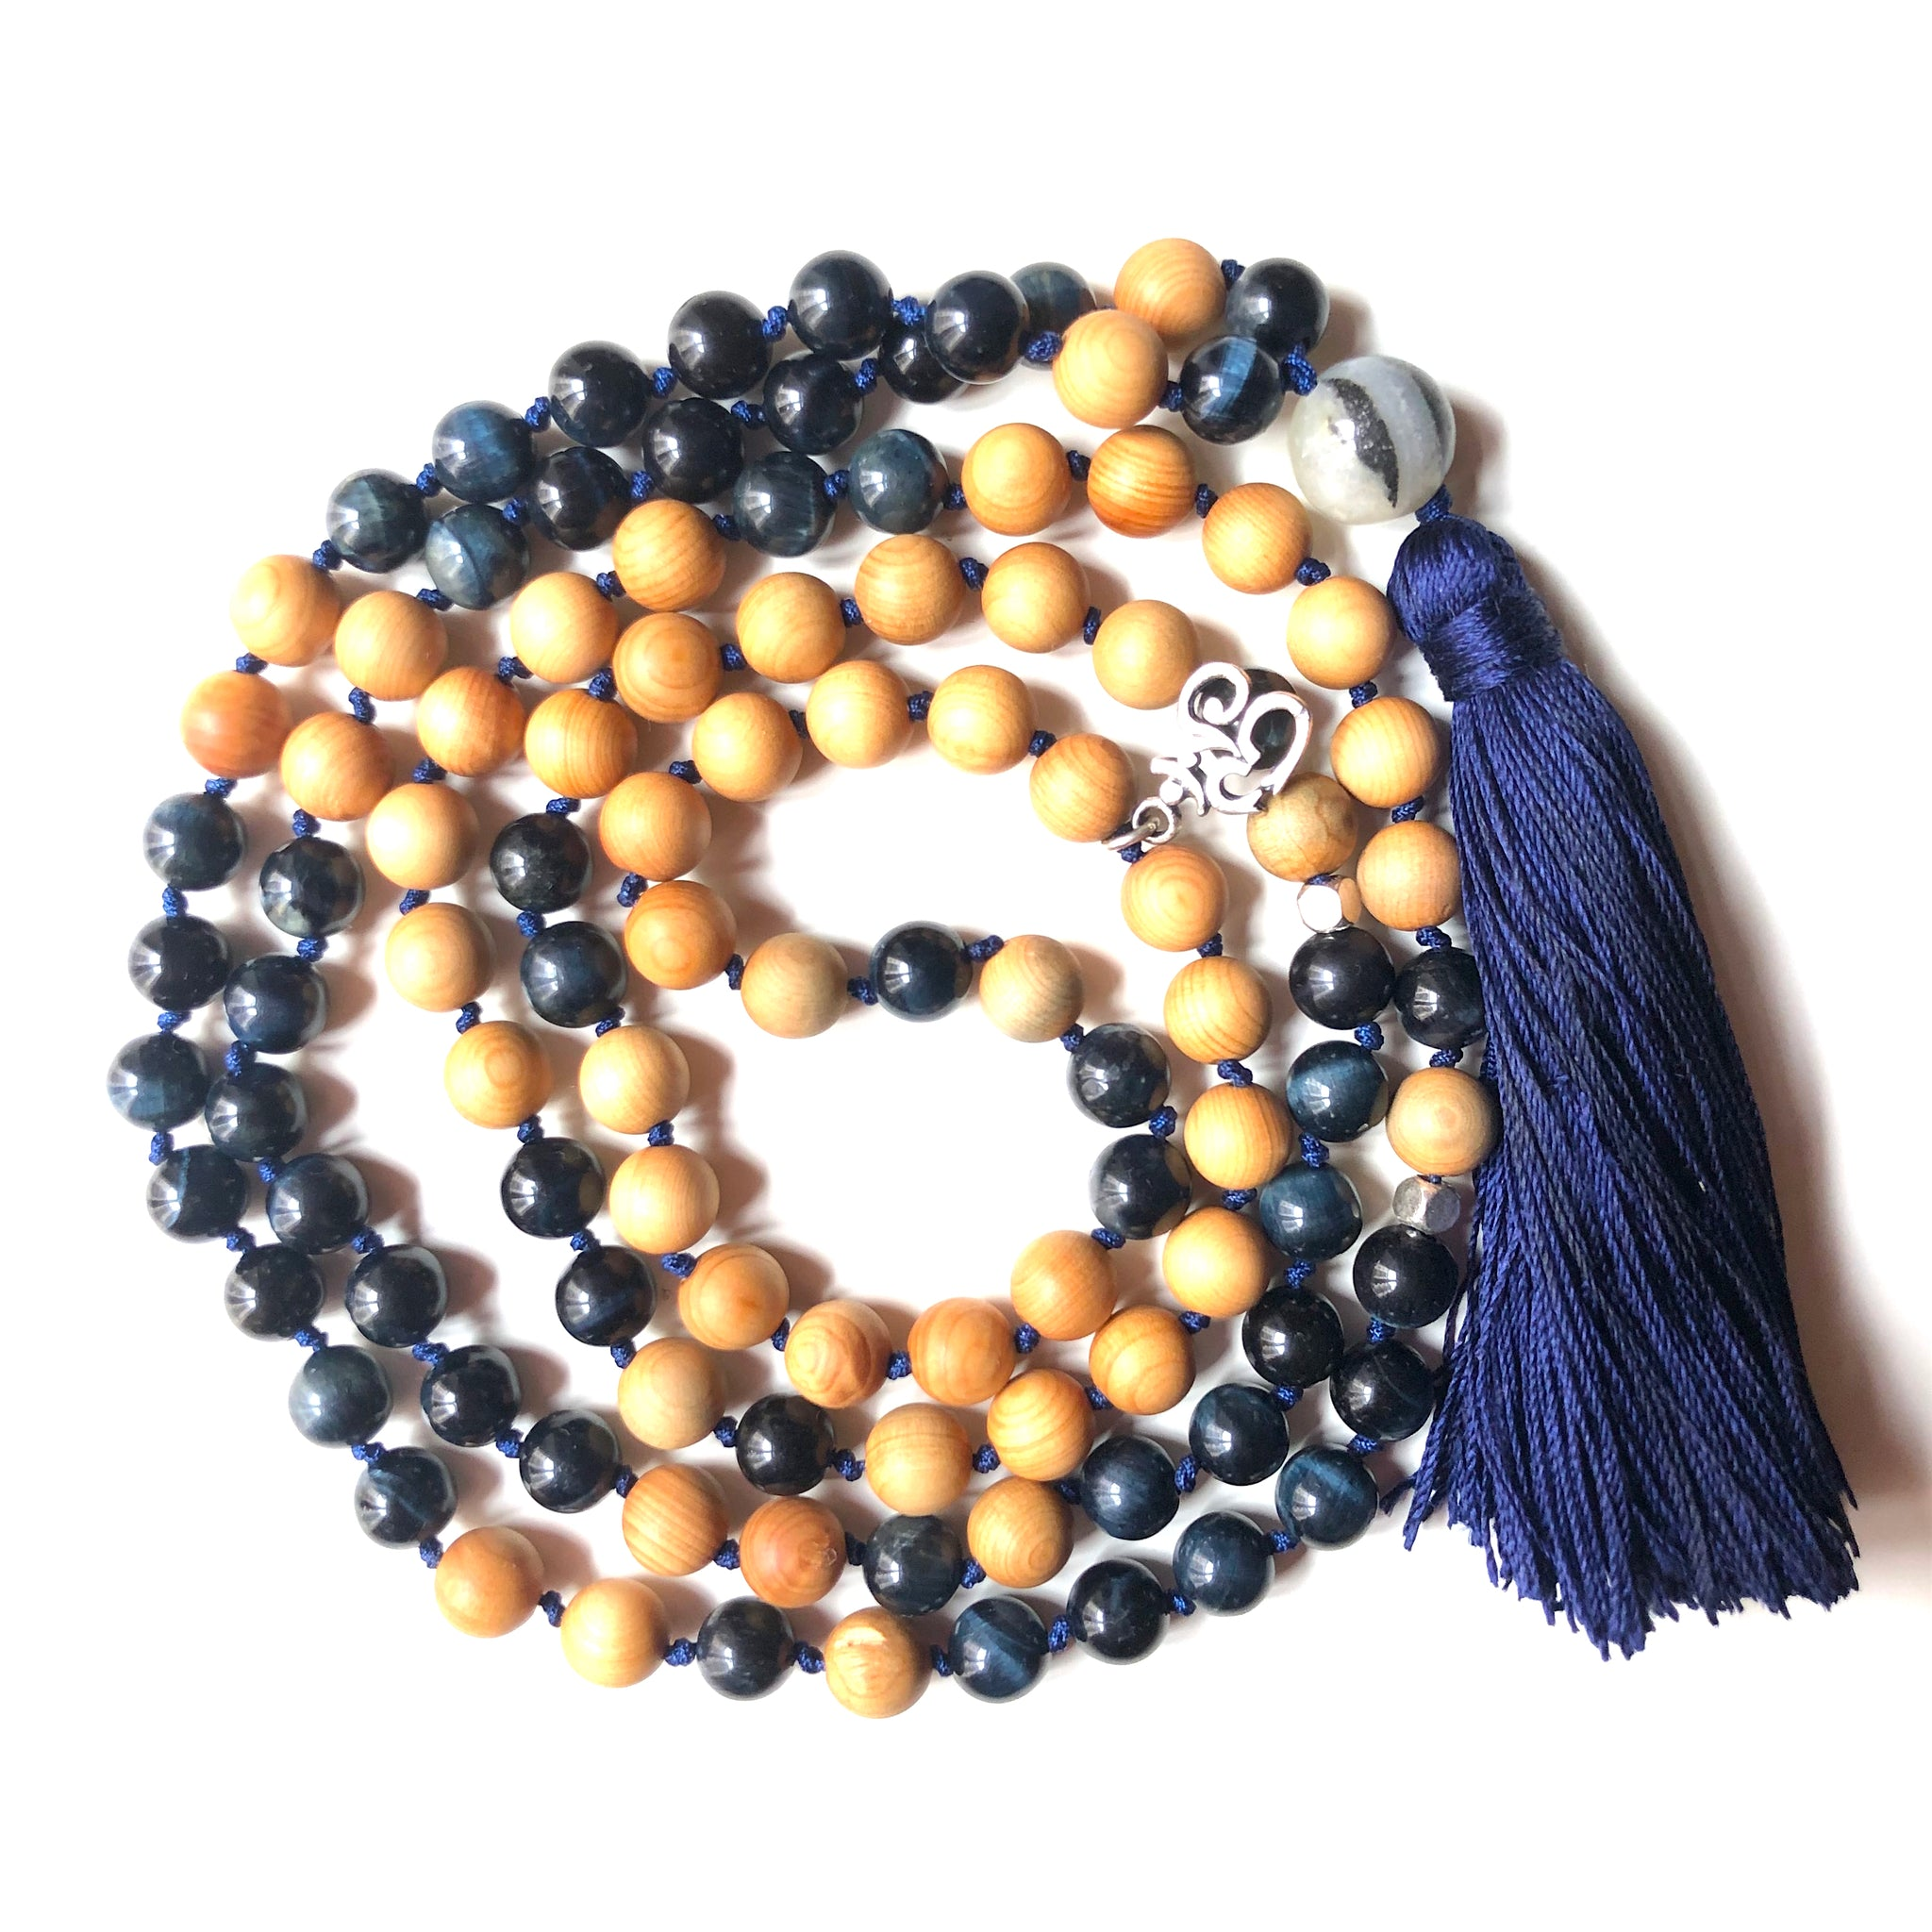 Blue Tiger's Eye Mala Beads, 108 Mala, Tassel Necklace, Yoga Jewelry, Meditation Beads